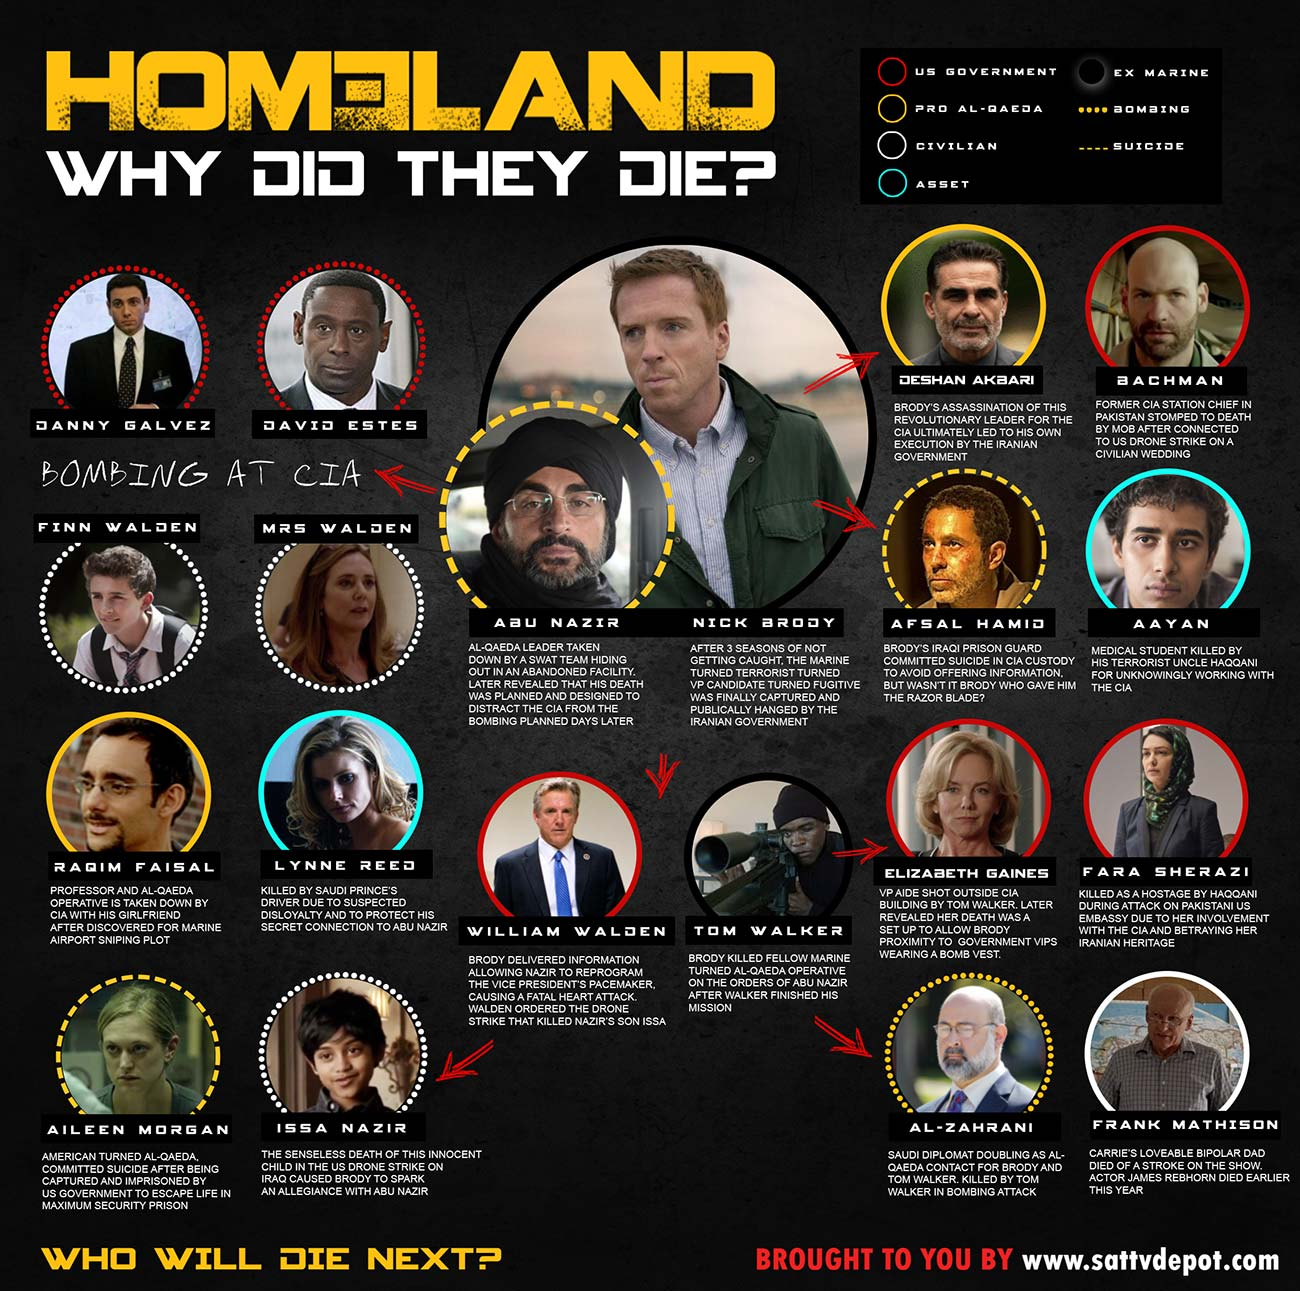 Homeland Death Chart: Why Did They Die?